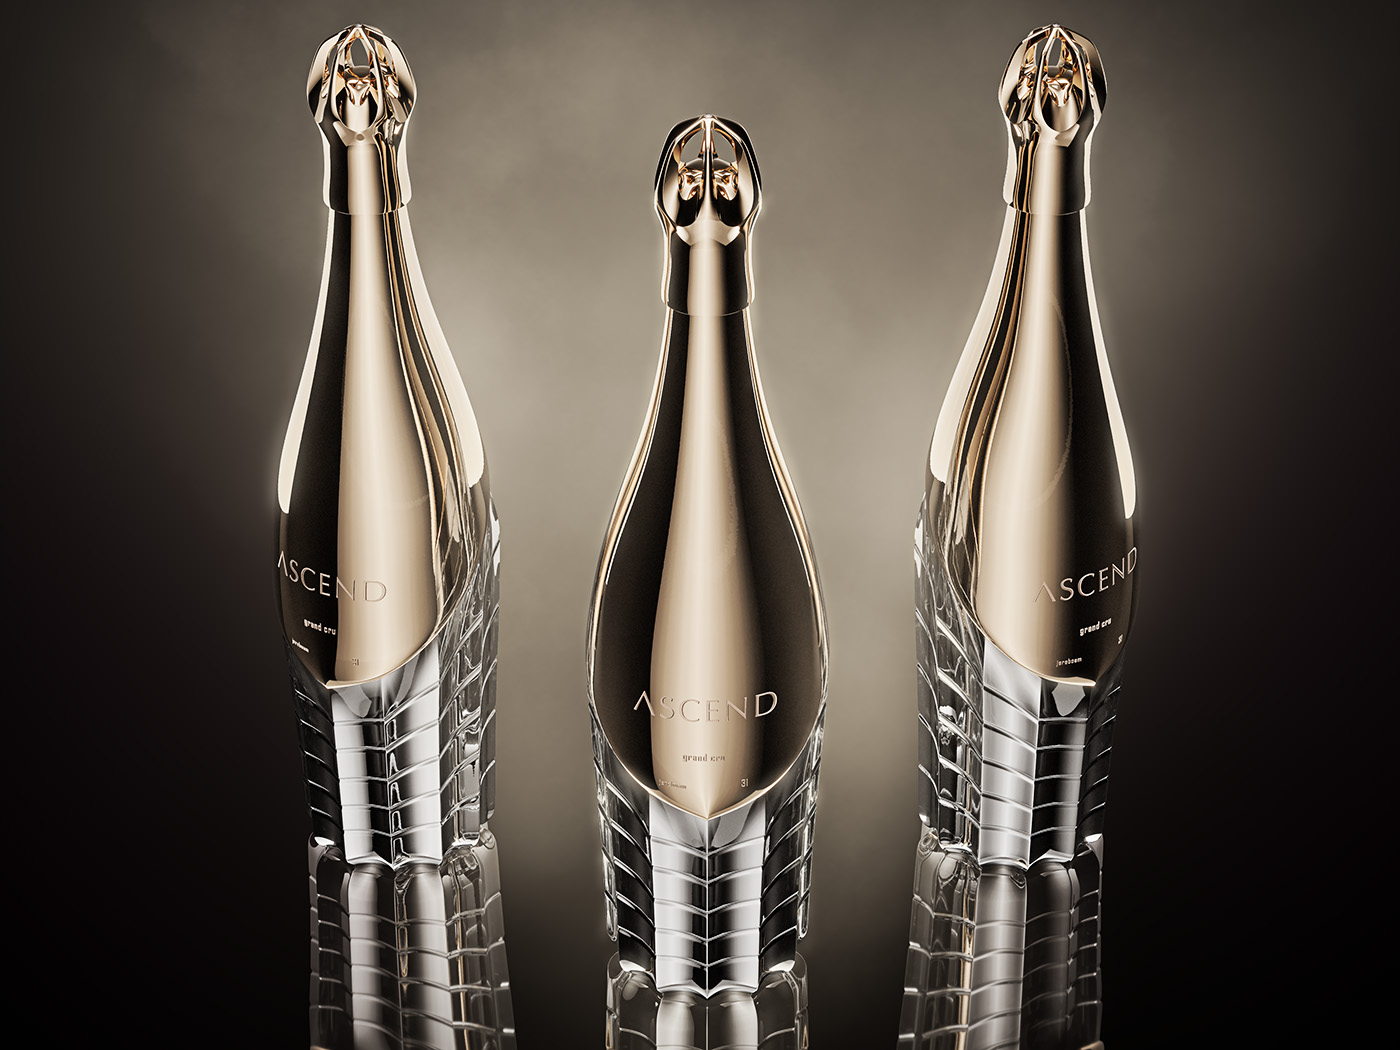 Acend luxury champagne bottle packaging 2.jpg